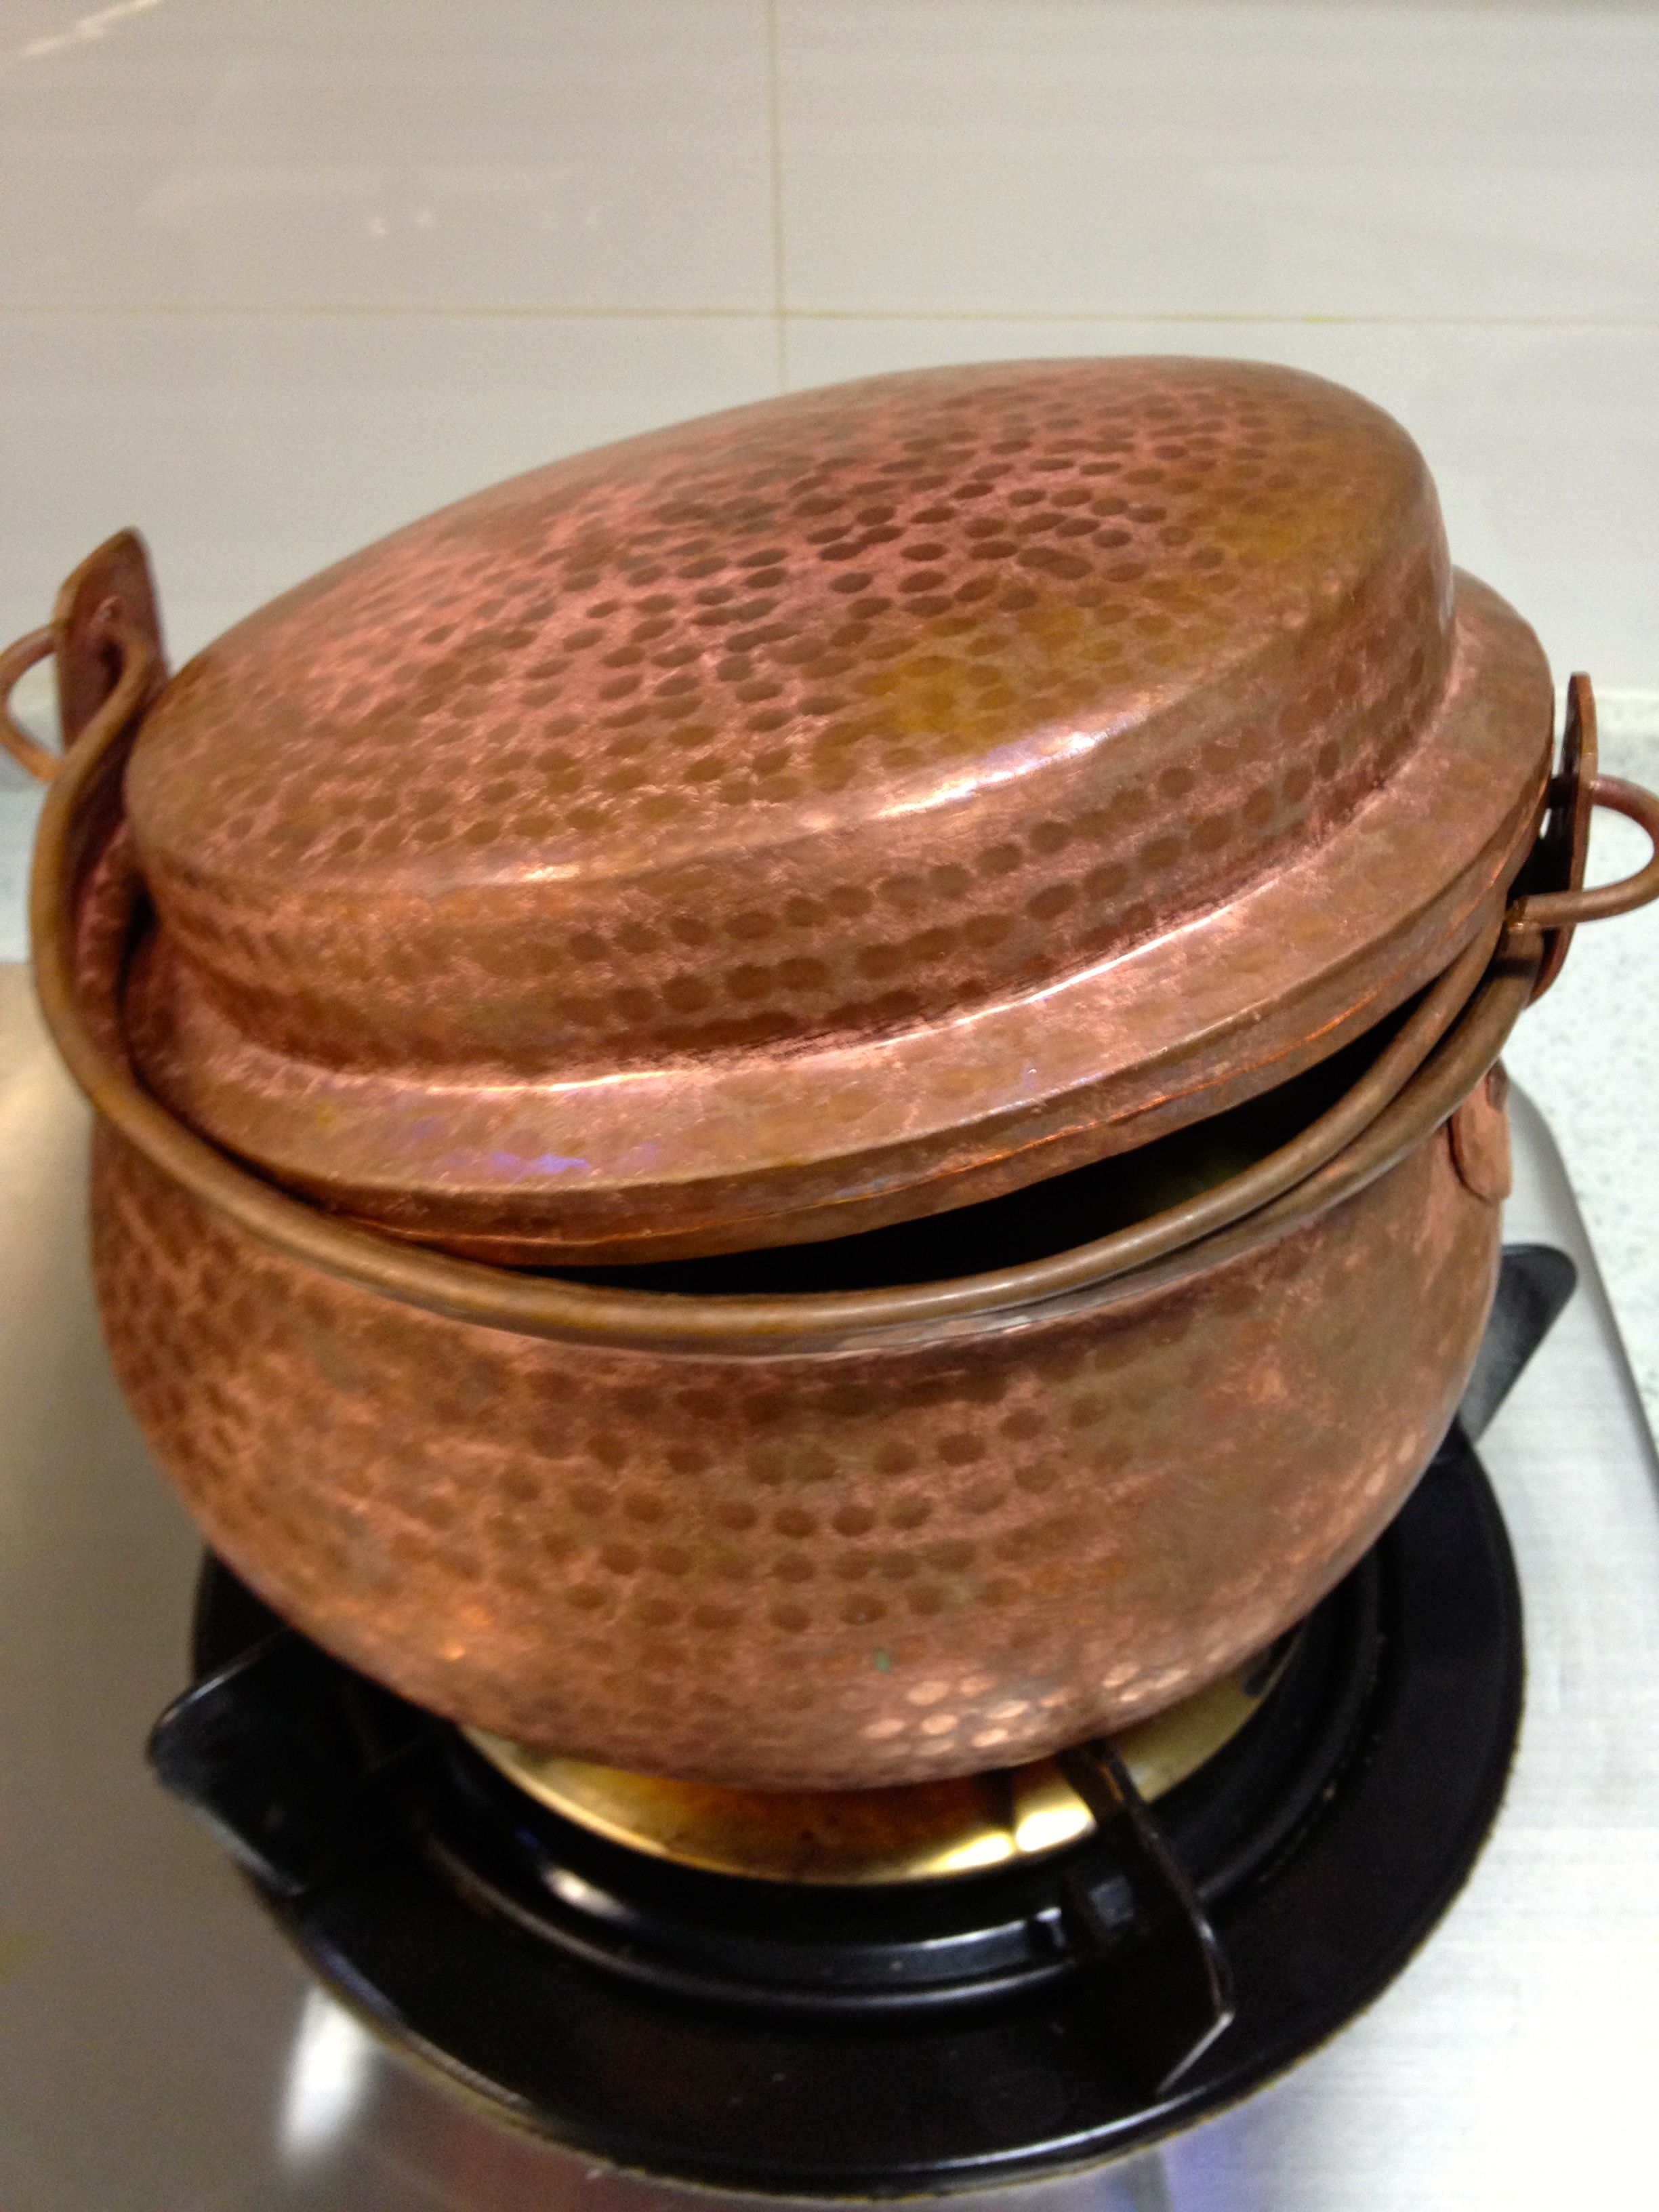 Yunnan Copper Pot famous around FuXian Lake. Recipes include Copper Pot Rice and Copper Pot Fish (fresh water fish from FuXian Lake)